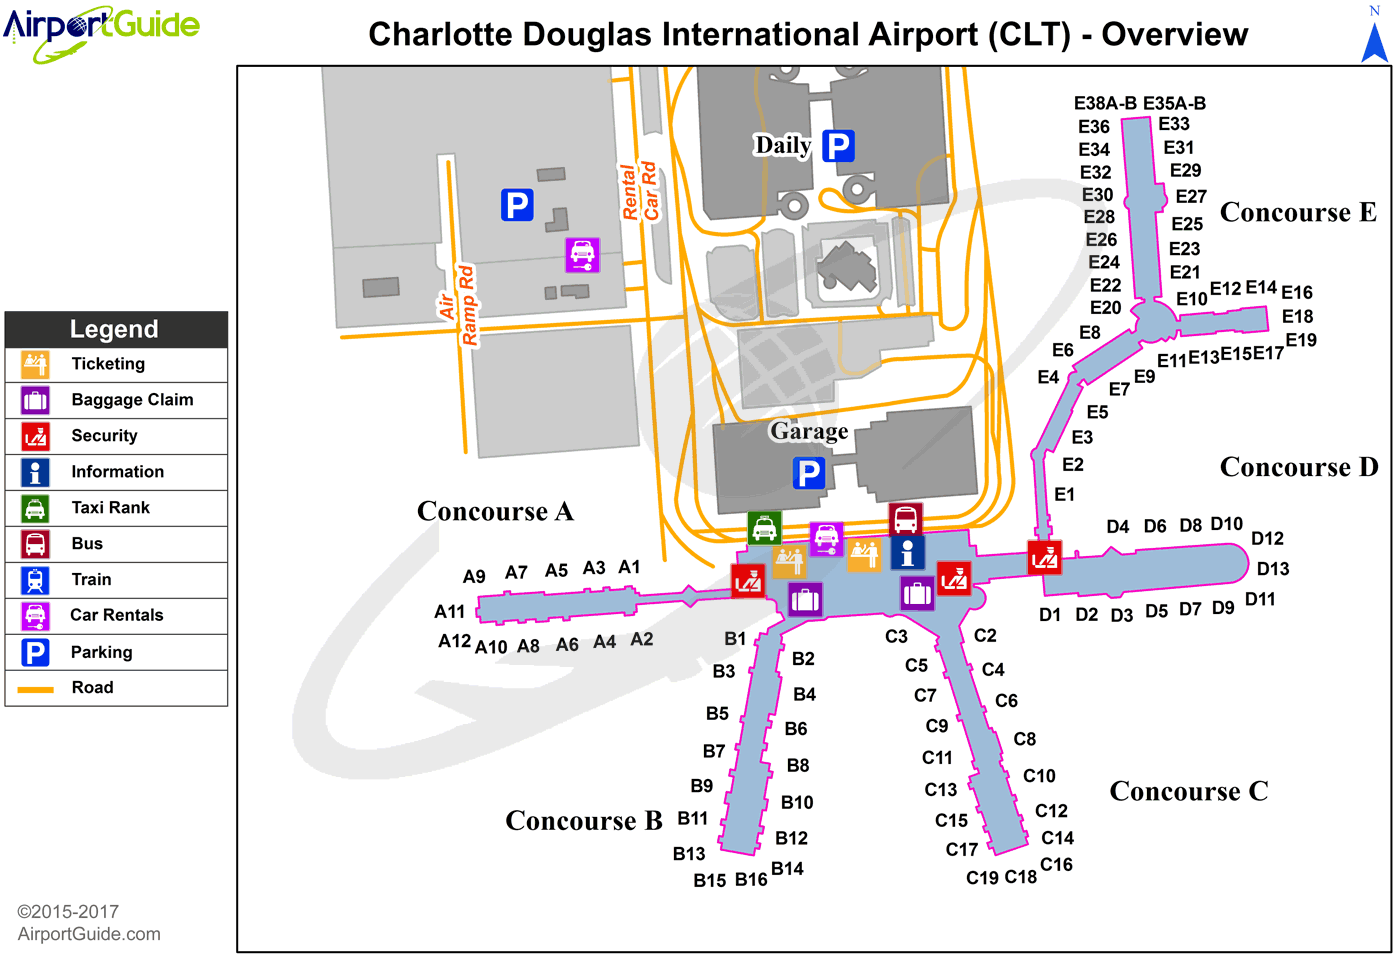 Douglas International Airport Map Charlotte   Charlotte/Douglas International (CLT) Airport Terminal